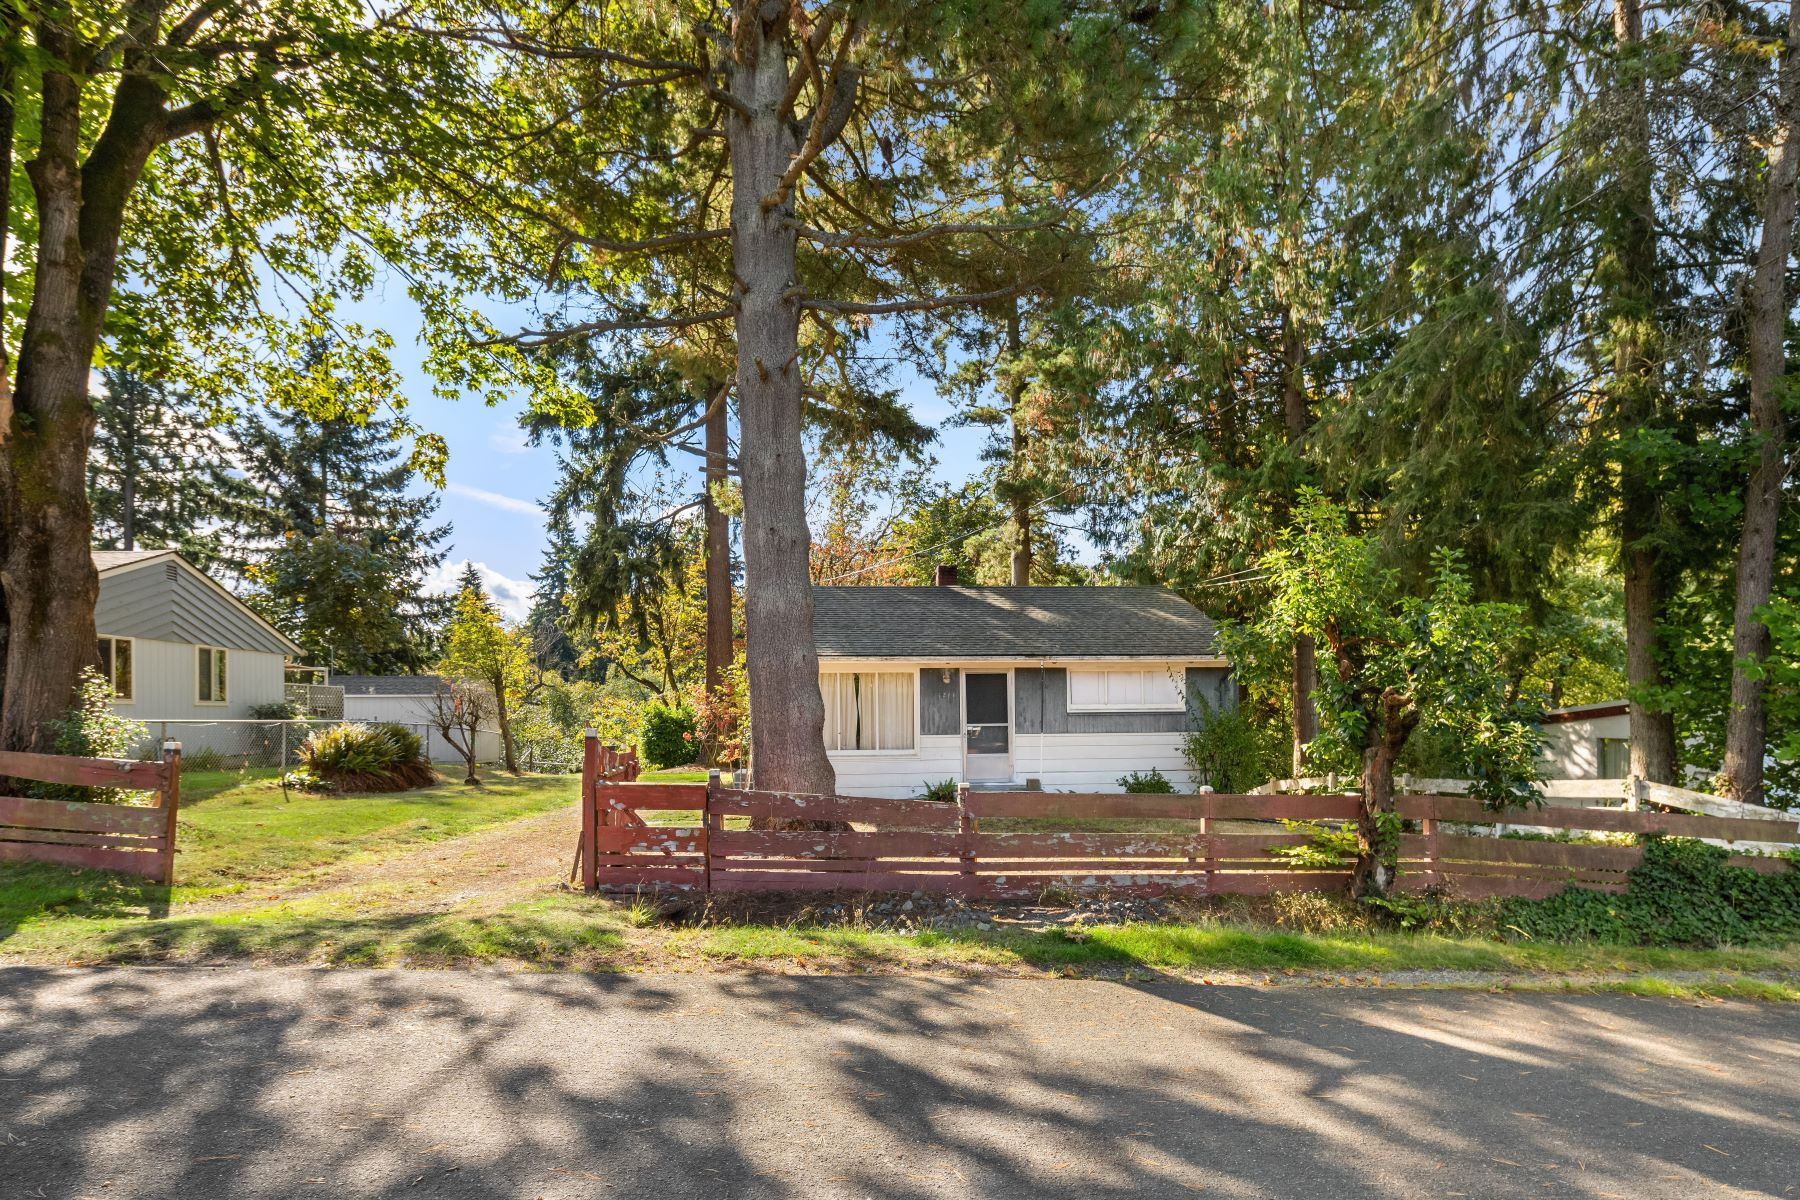 Single Family Homes for Sale at Mid-Century Bungalow 1211 SE 166th St Burien, Washington 98166 United States